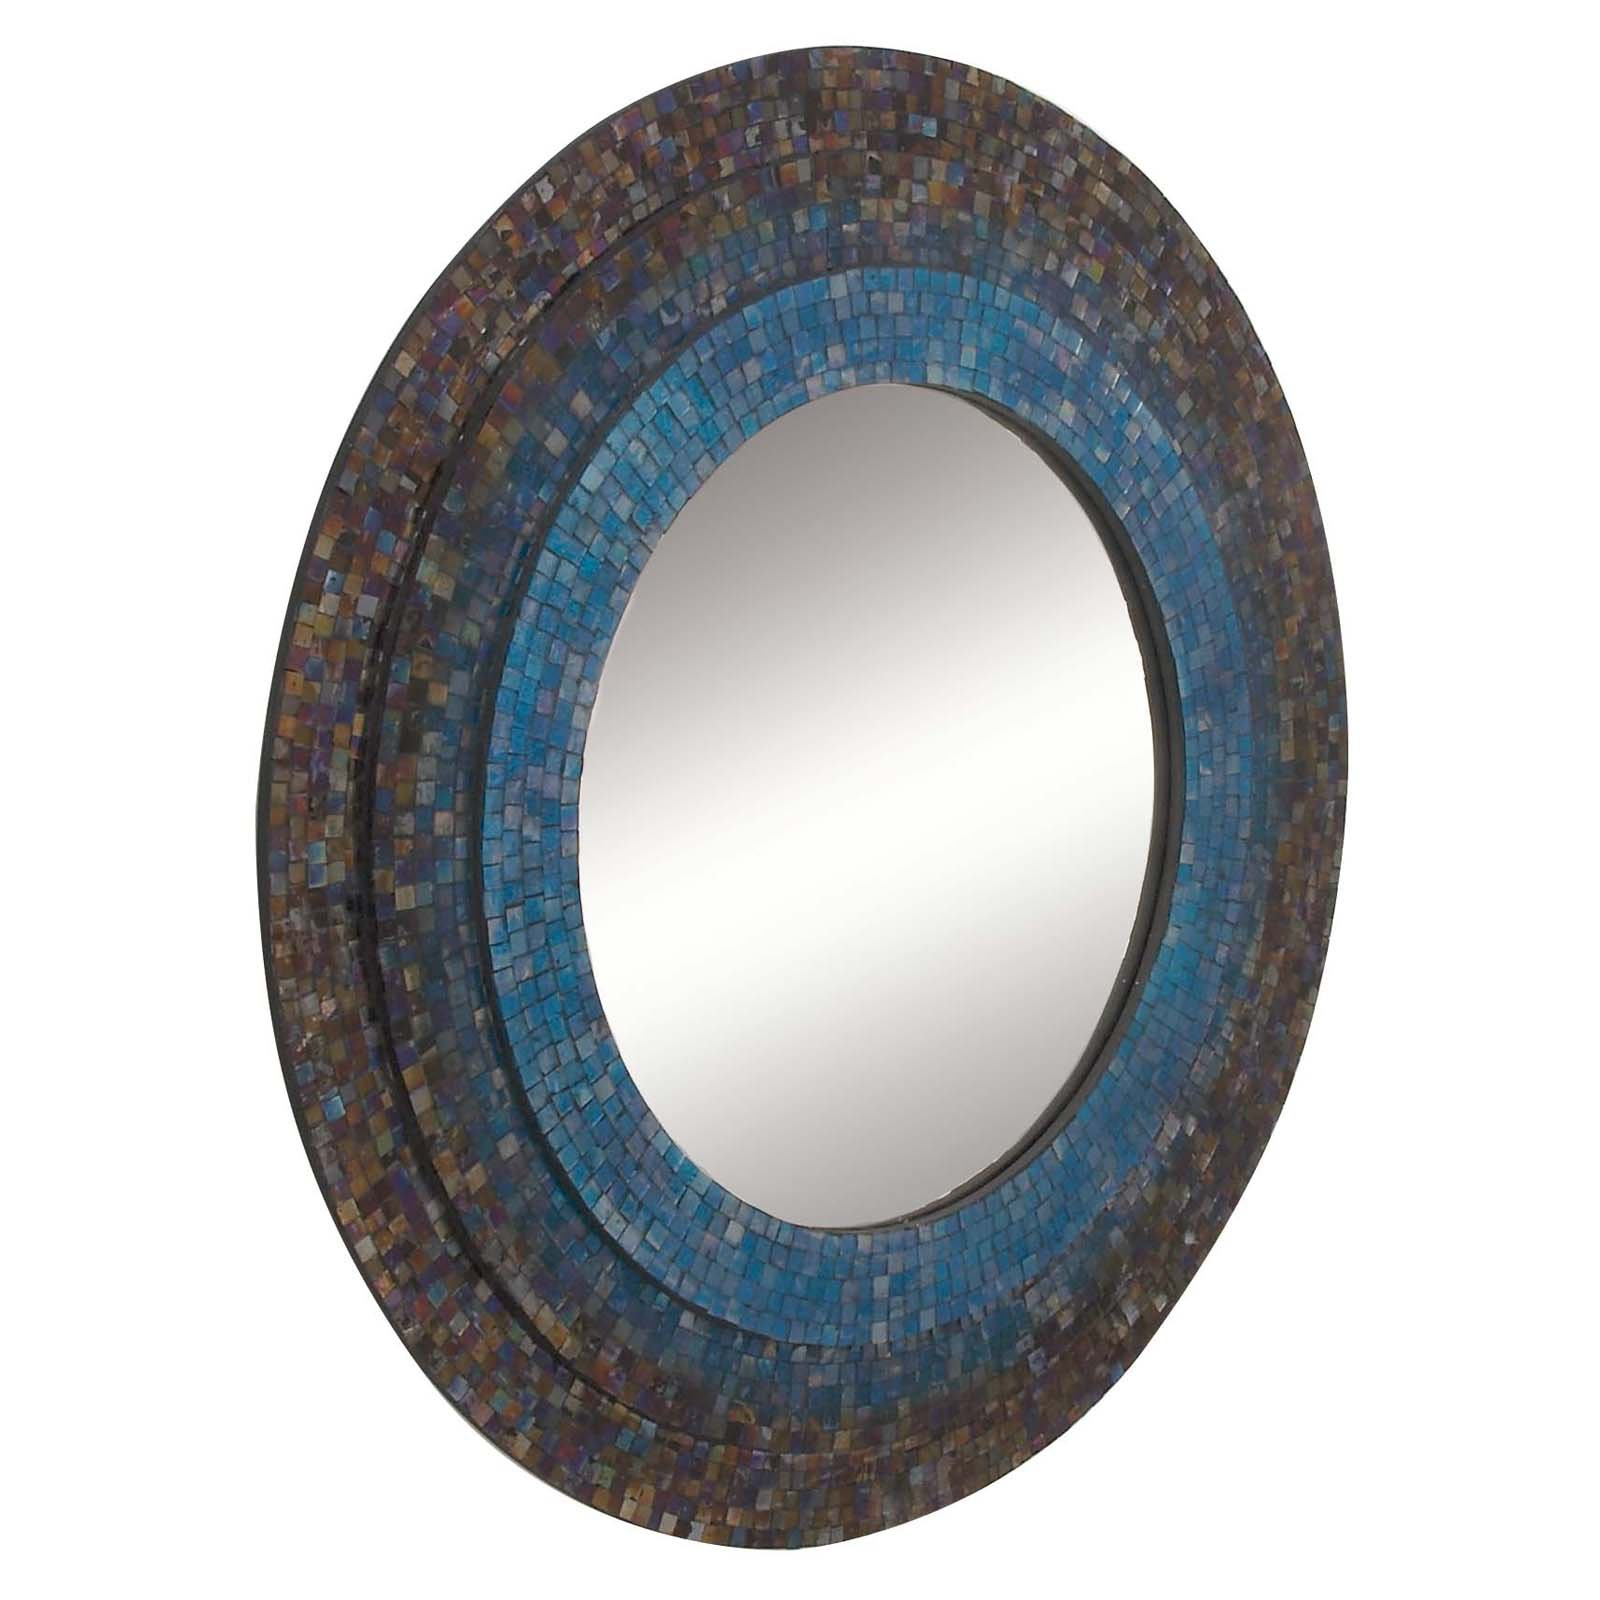 Decmode 30 Inch Eclectic Iron And Wood Mosaic Wall Mirror, Multi Within Round Eclectic Accent Mirrors (Gallery 26 of 30)